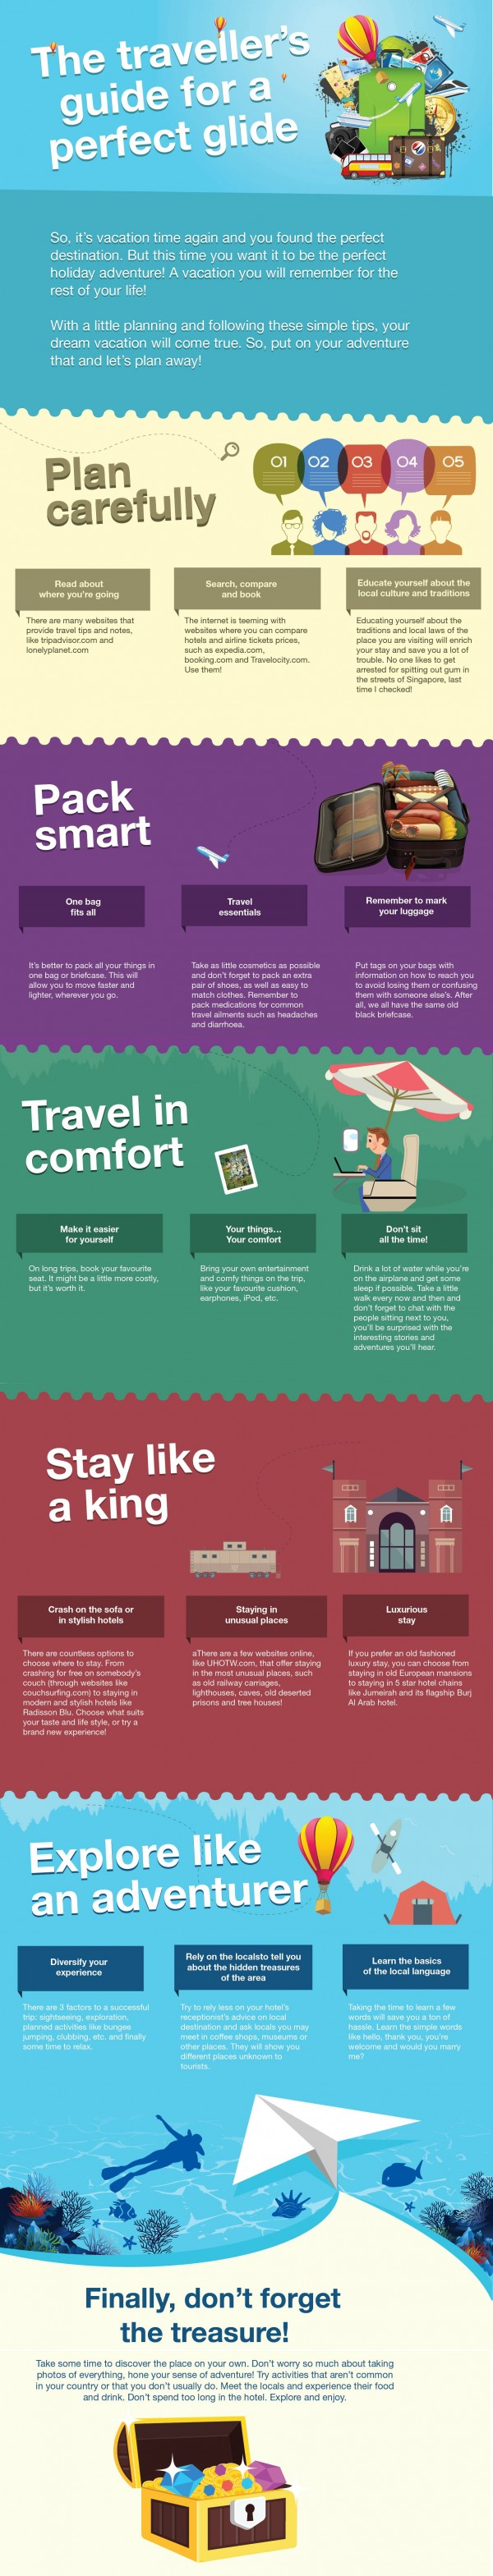 Travel Guide for every backpacker